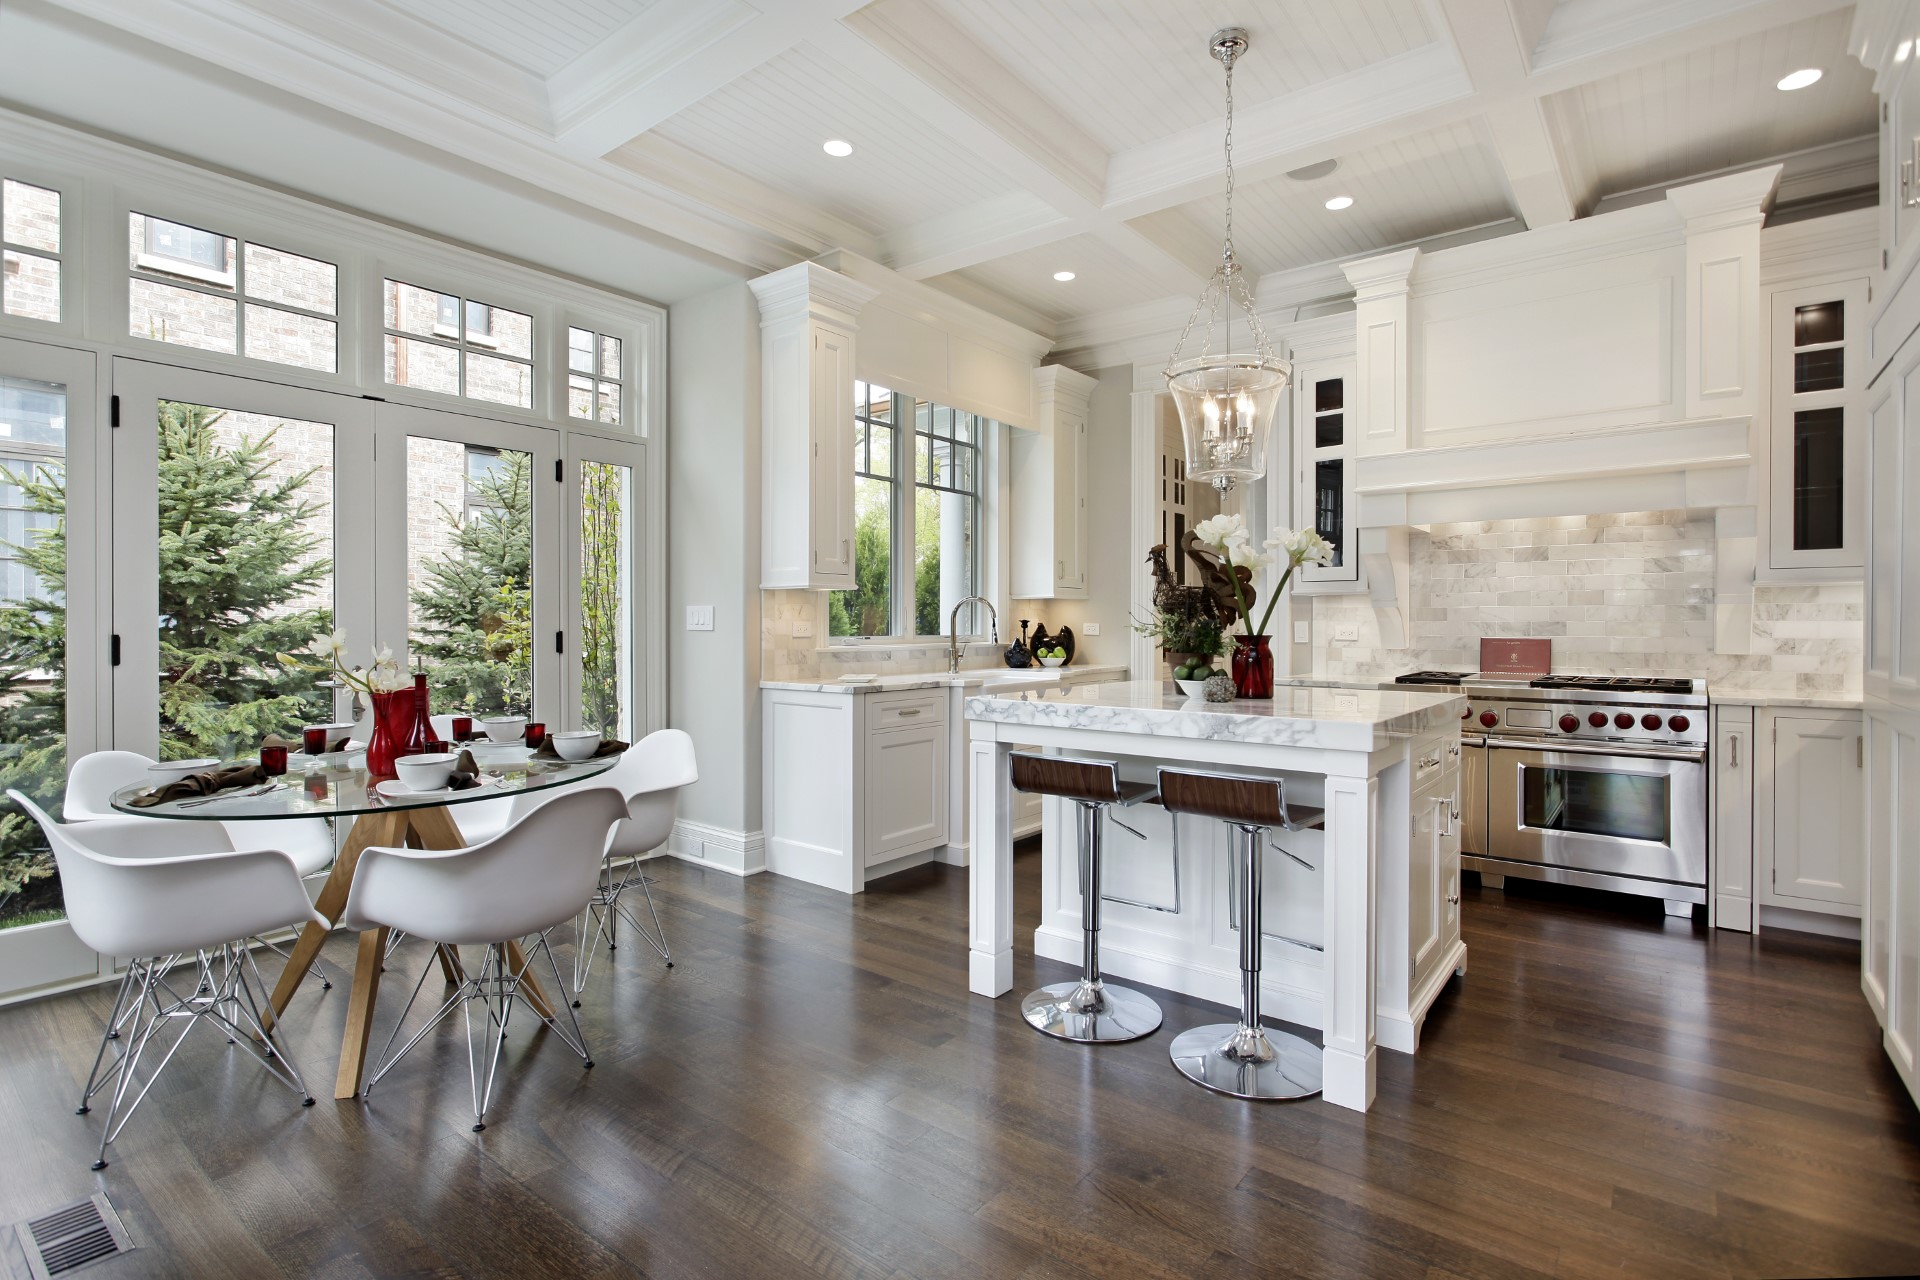 Cape Cod kitchens have always been my favorite, there bright, inviting, and a great way to polish out your home. The pinnacle of a working Cape Cod layout is the dark flooring the complements the white cabinets. The marble countertops tend to look more elegant when there lighter color in this decor.